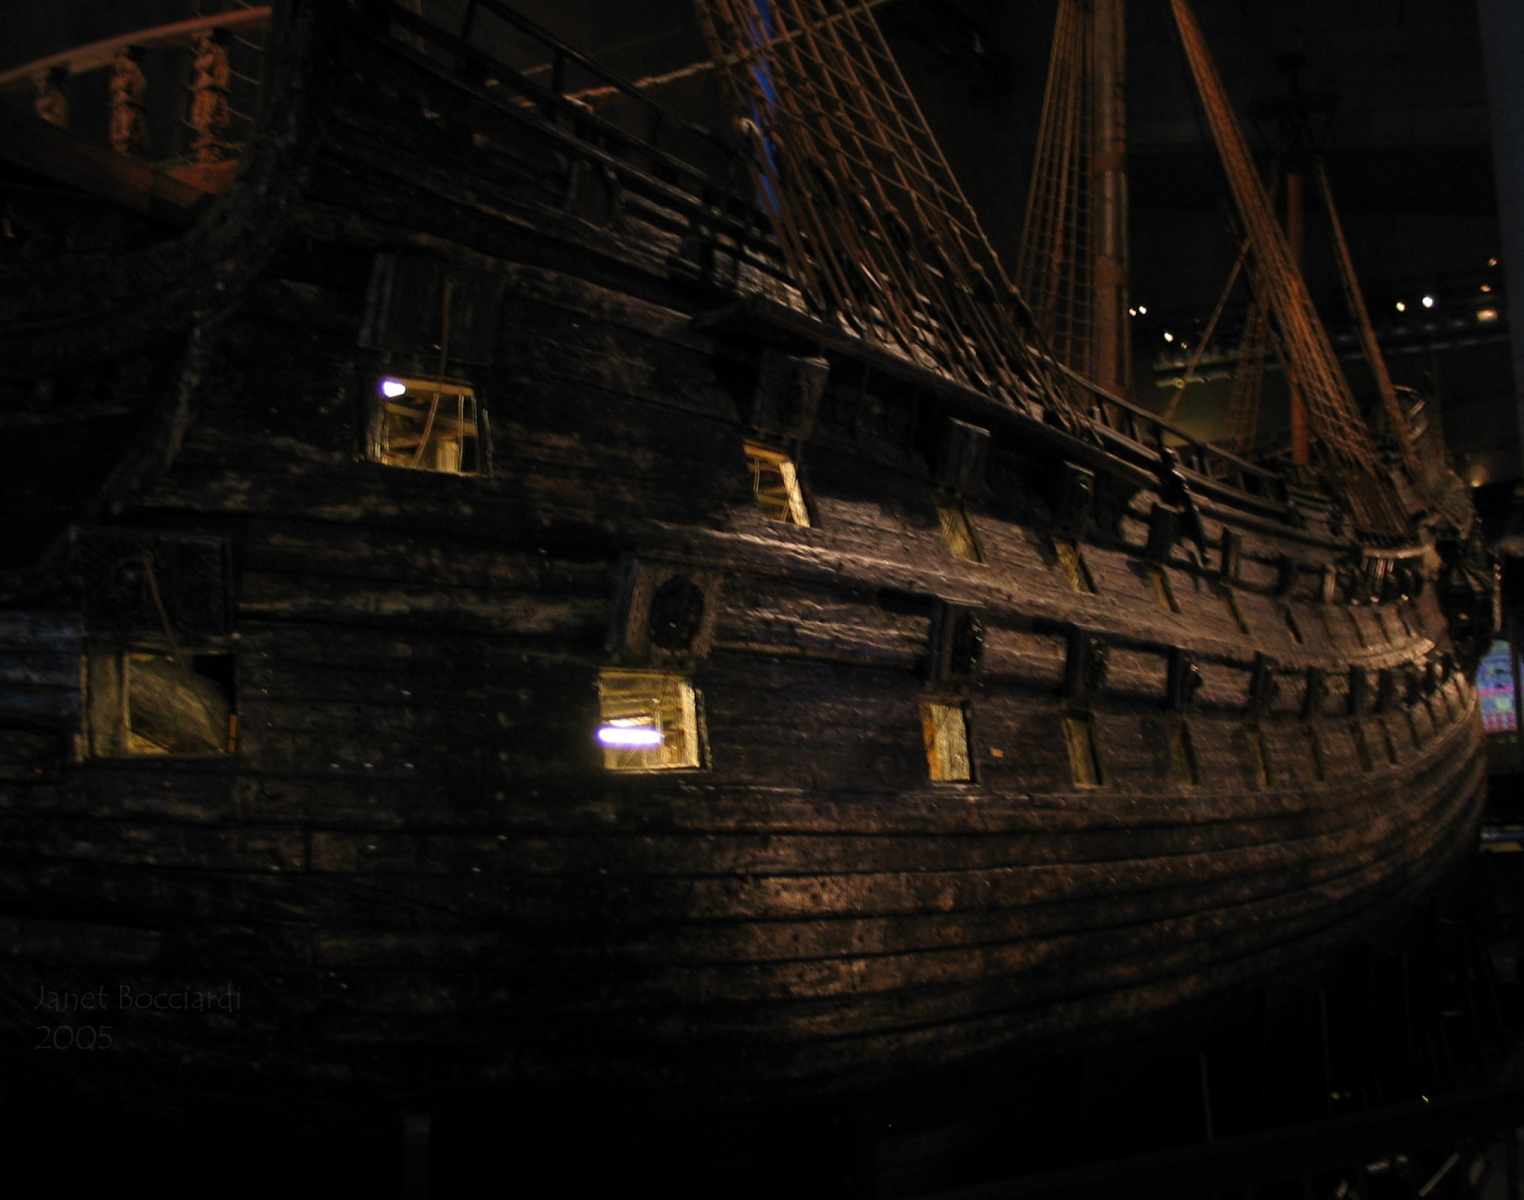 Vasa wooden ship